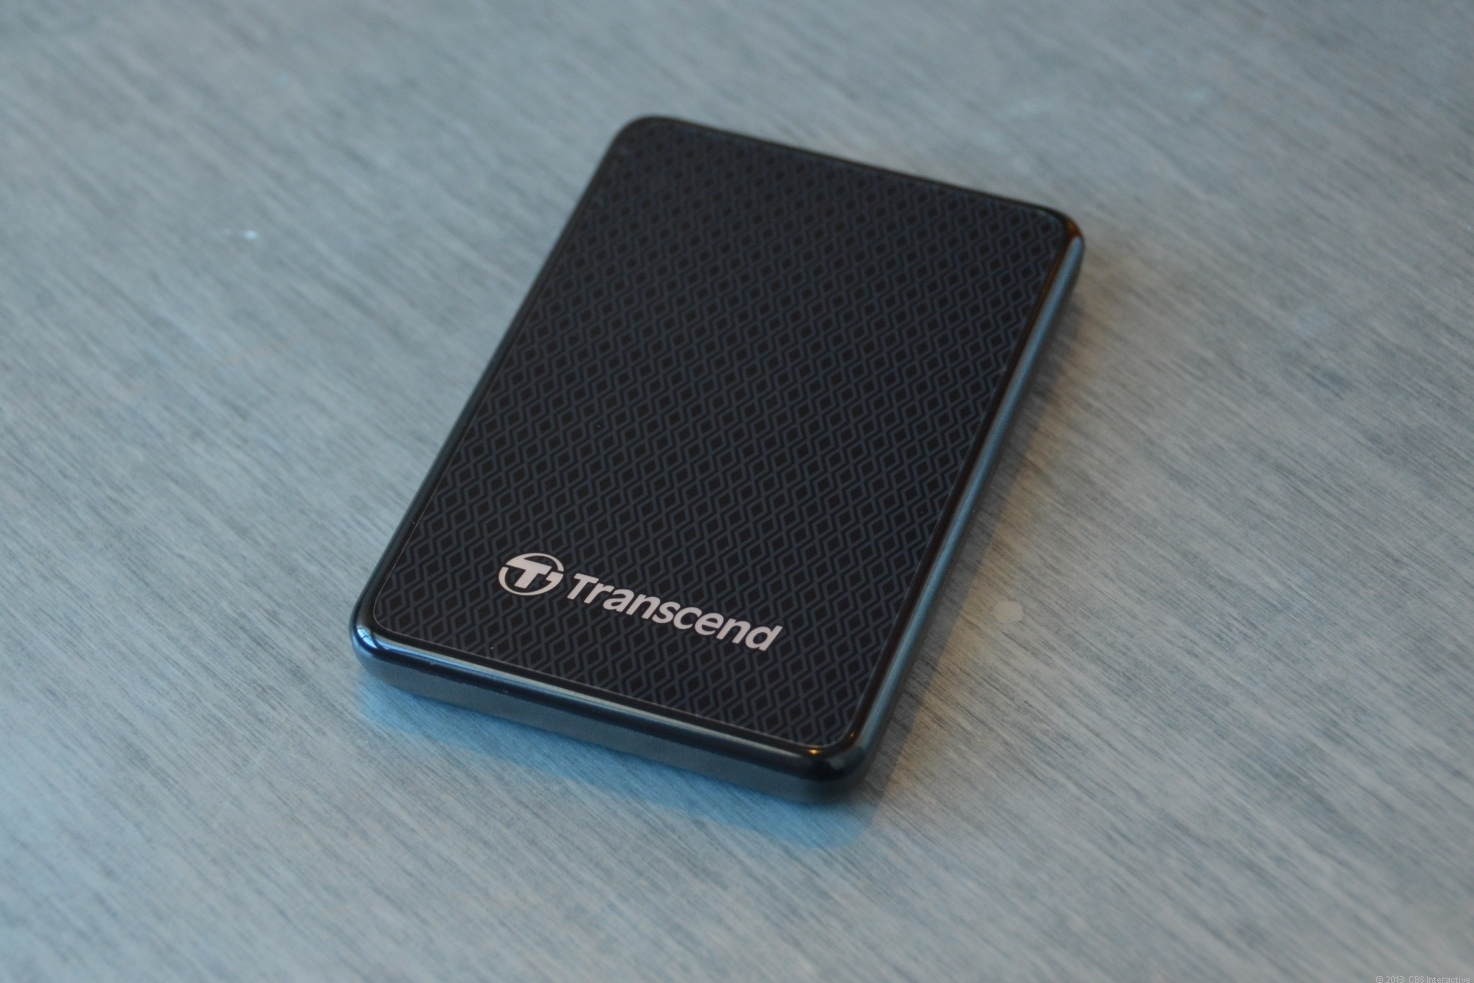 Transcend ESD200 is one of the best external SSD in the market